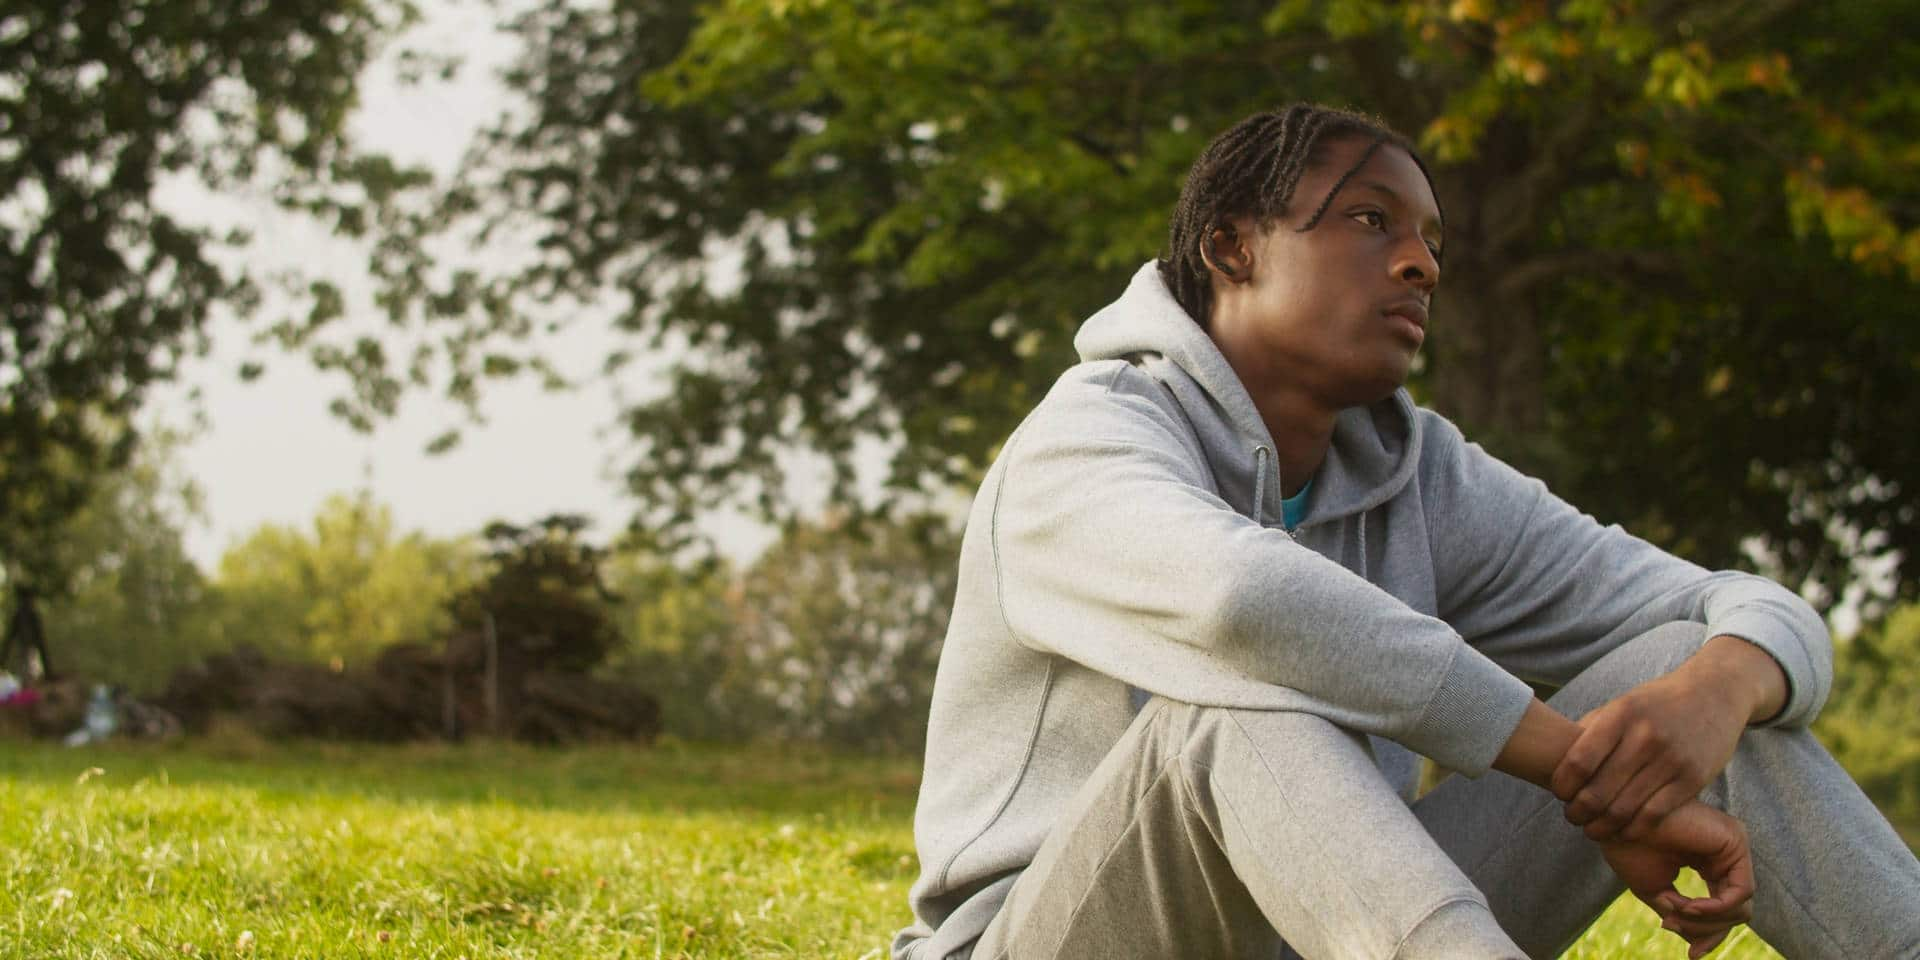 Still from short film Brother's Keeper starring Louis Nicholson